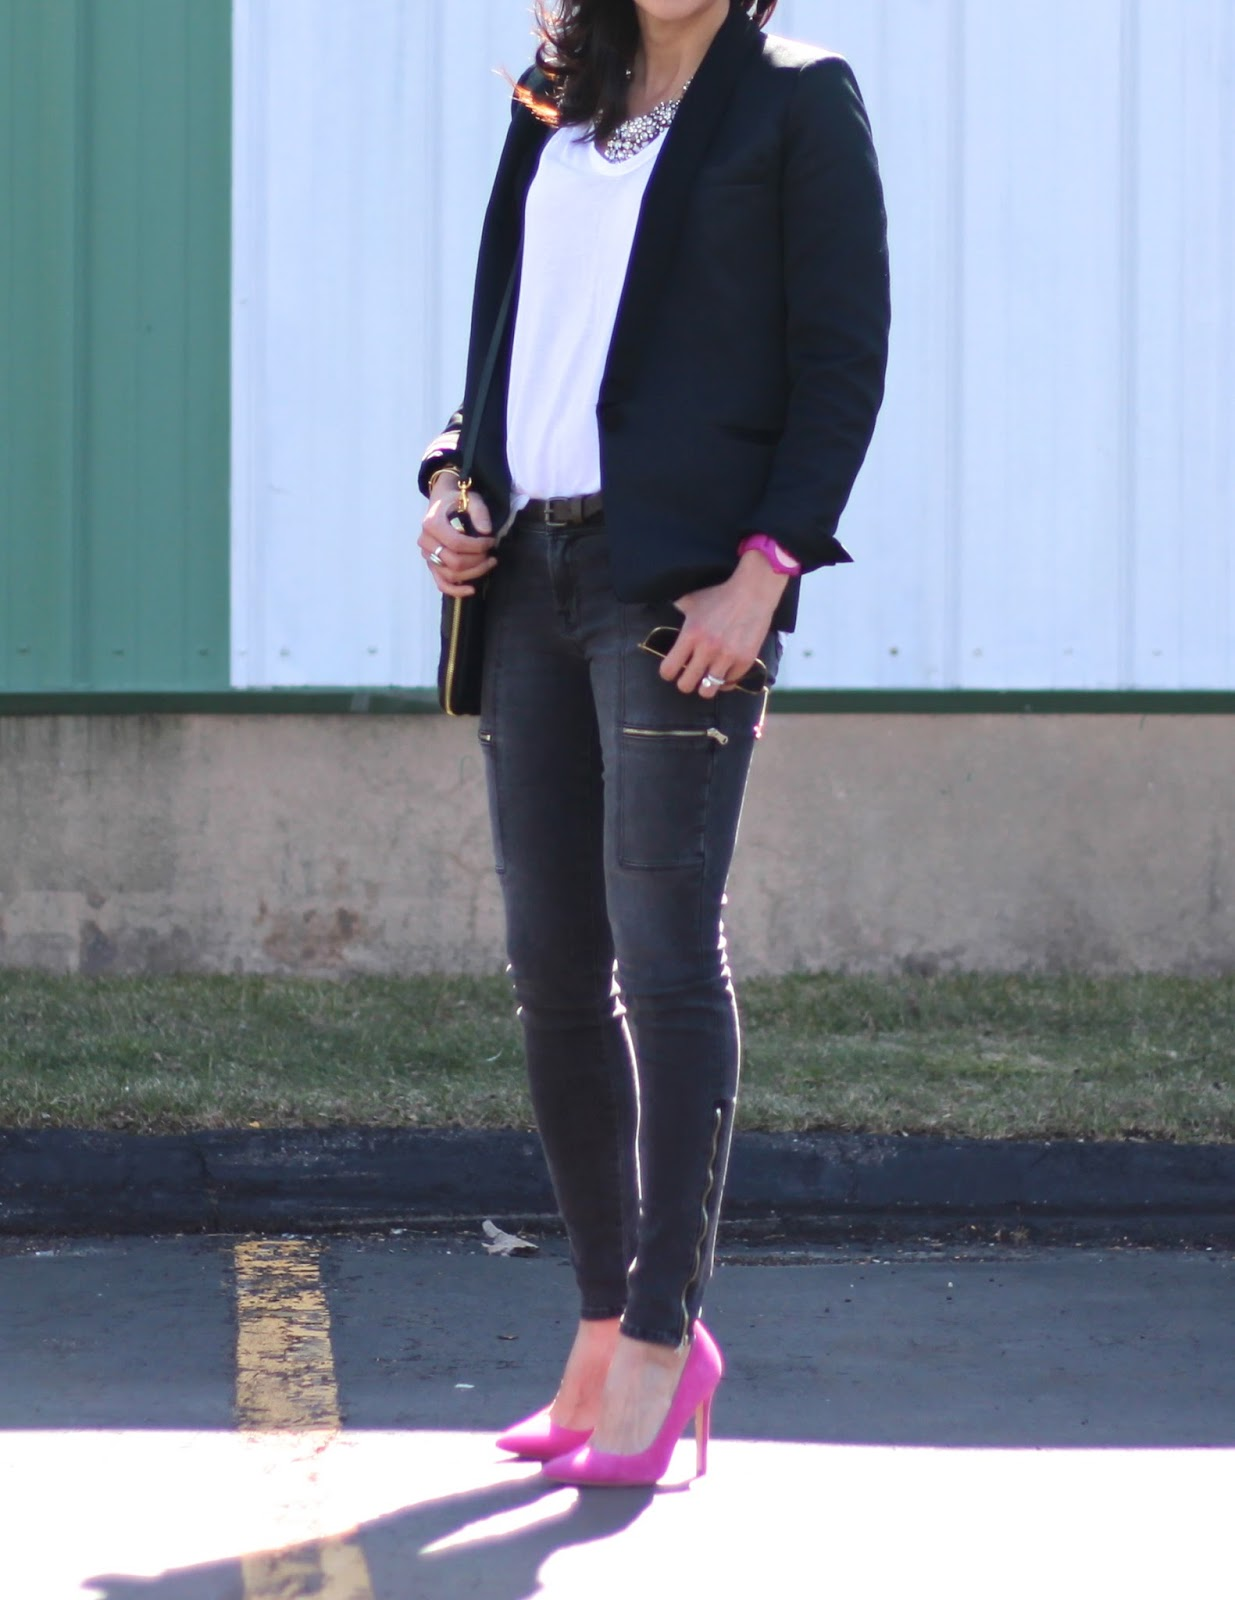 outfit- Sandro jacket, Alexander Wang t-shirt, J Brand photo-ready jeans, Ivanka Trump heels